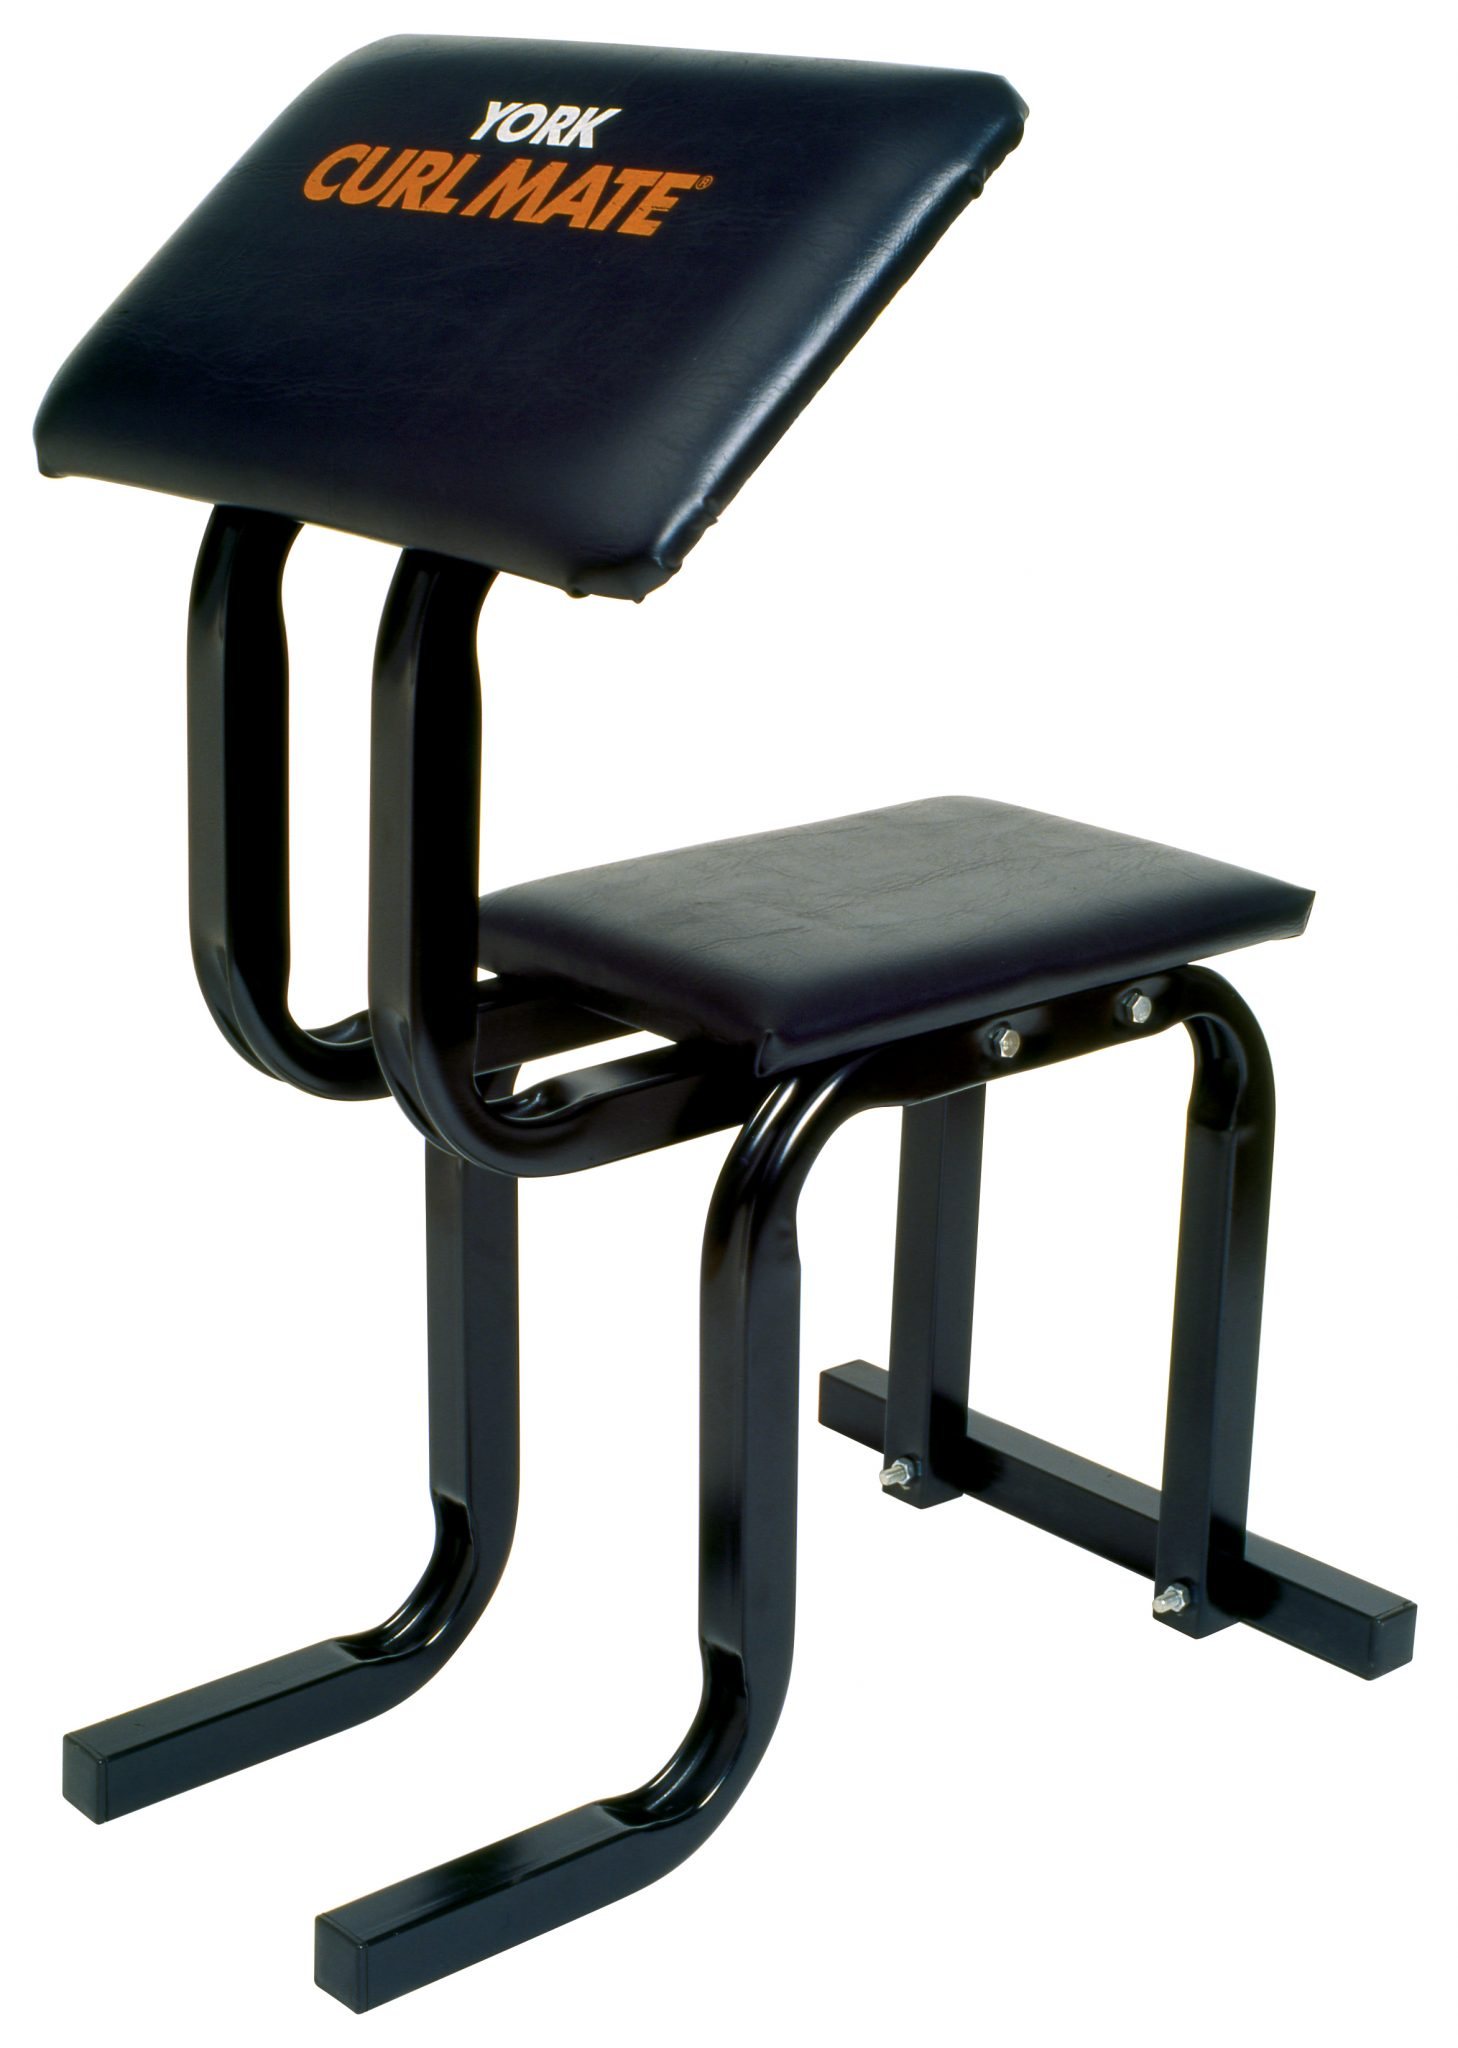 Seated Curl Bench | Home Gym Equipment